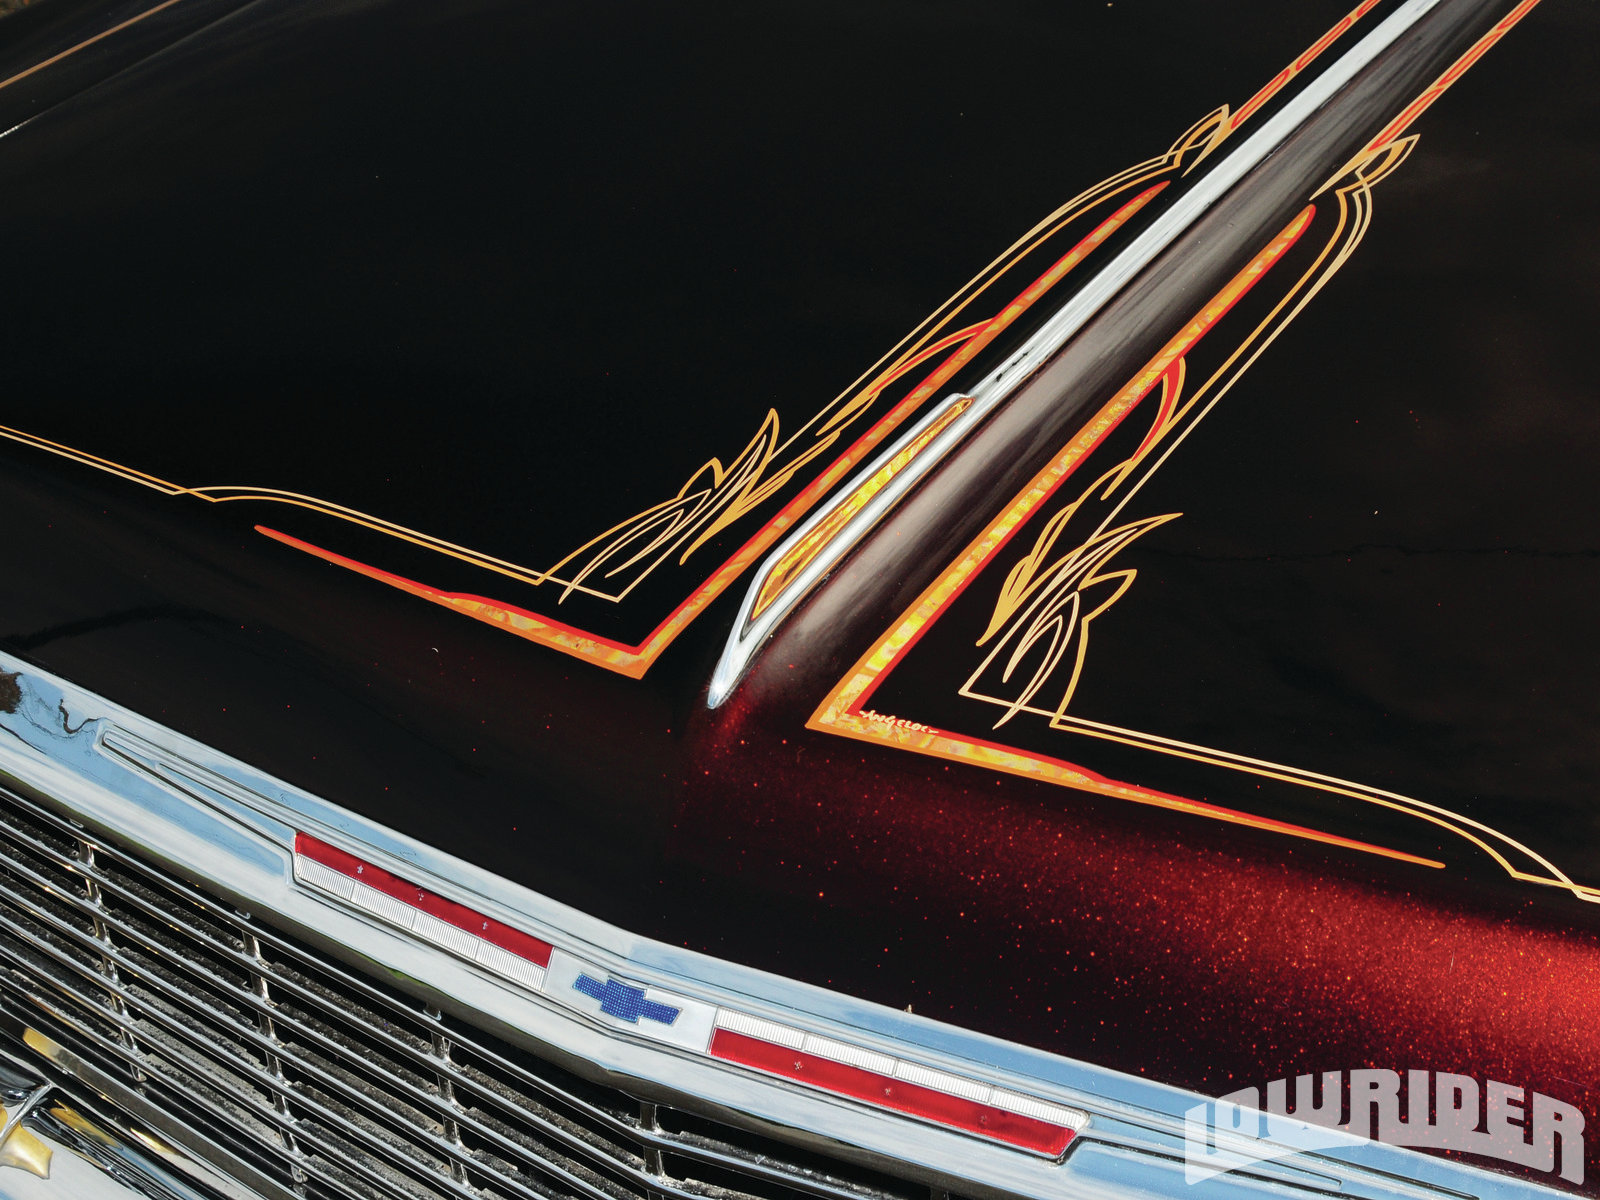 Chevrolet Impala Midnight Edition further  likewise A C D D Ecb A Af Dce Eb likewise X in addition Lrmp O Chevrolet Impala Ss Convertible Pinstriping. on 1964 chevrolet chevy impala